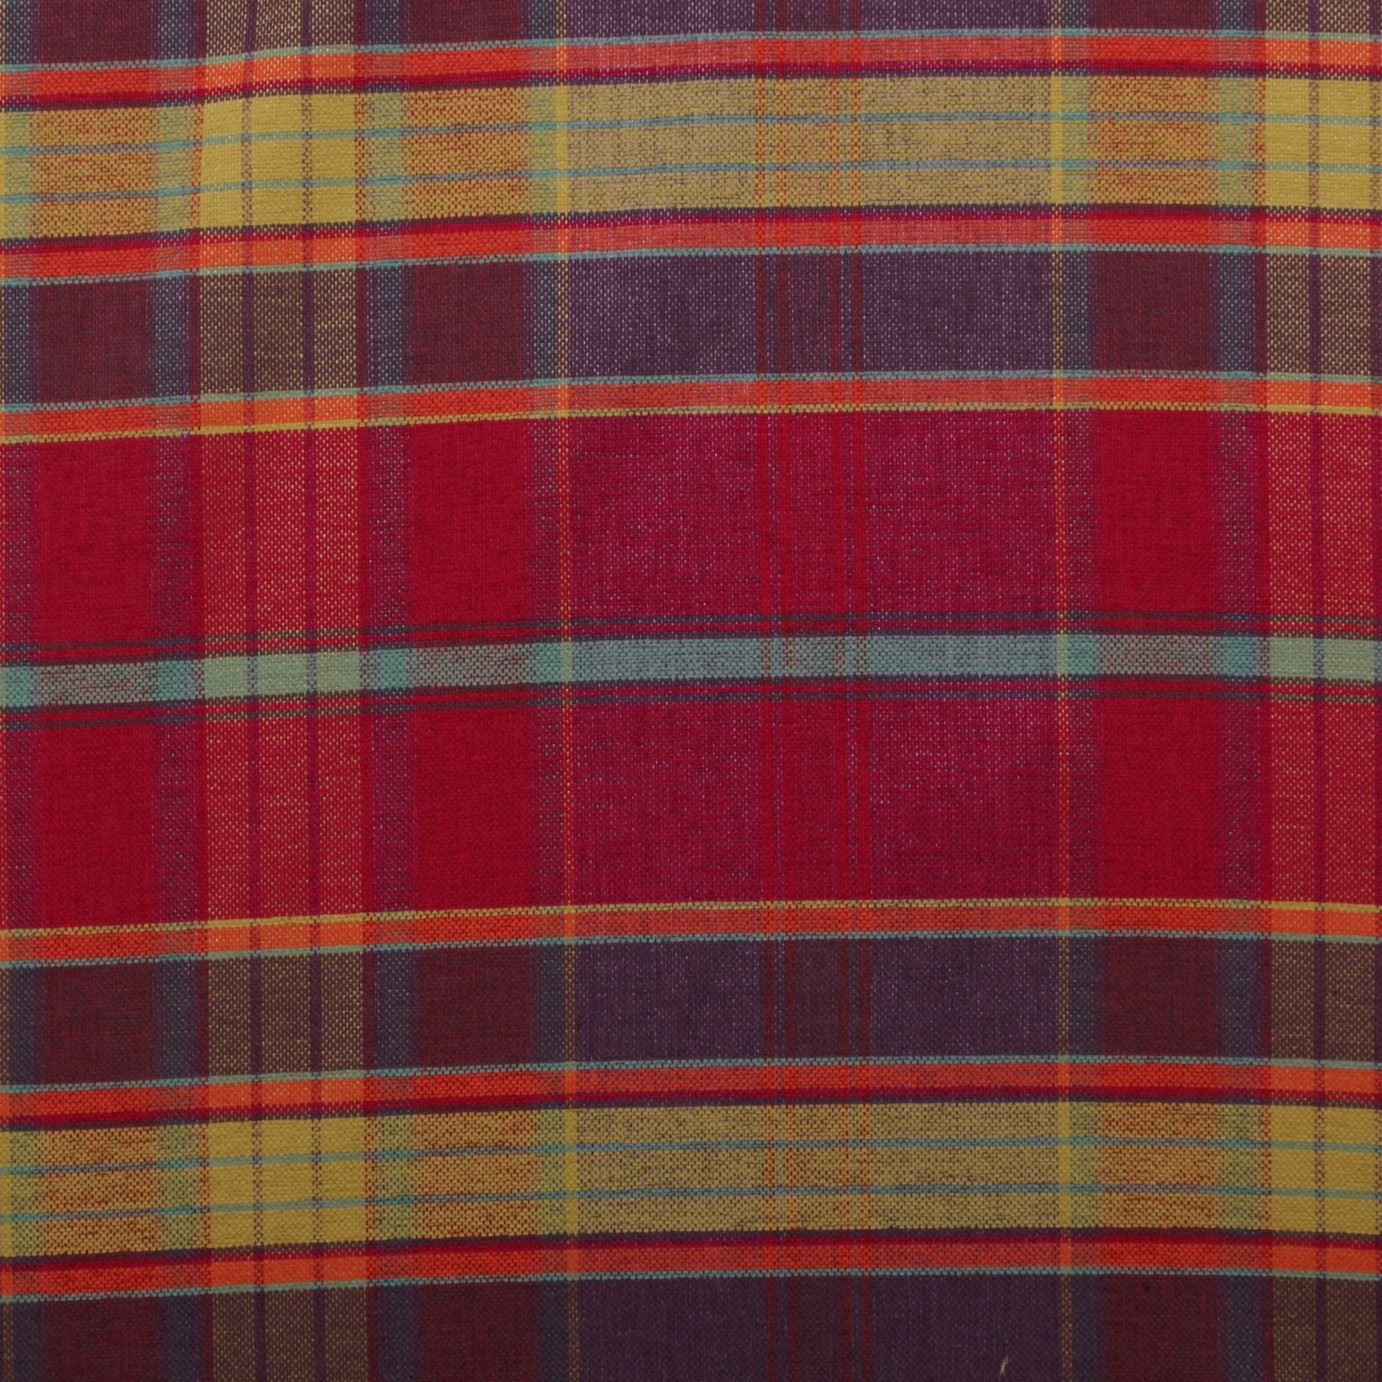 Blue Plaid Fabric Shop for Indigo, Navy or Blue colored Plaid fabric, Tartan Plaid, Glenn Plaid, Blackwatch Plaid or Stewart Plaid fabric for curtain fabric or upholstery fabric. lidarwindtechnolog.ga has the latest decorator colors & patterns at discount prices.